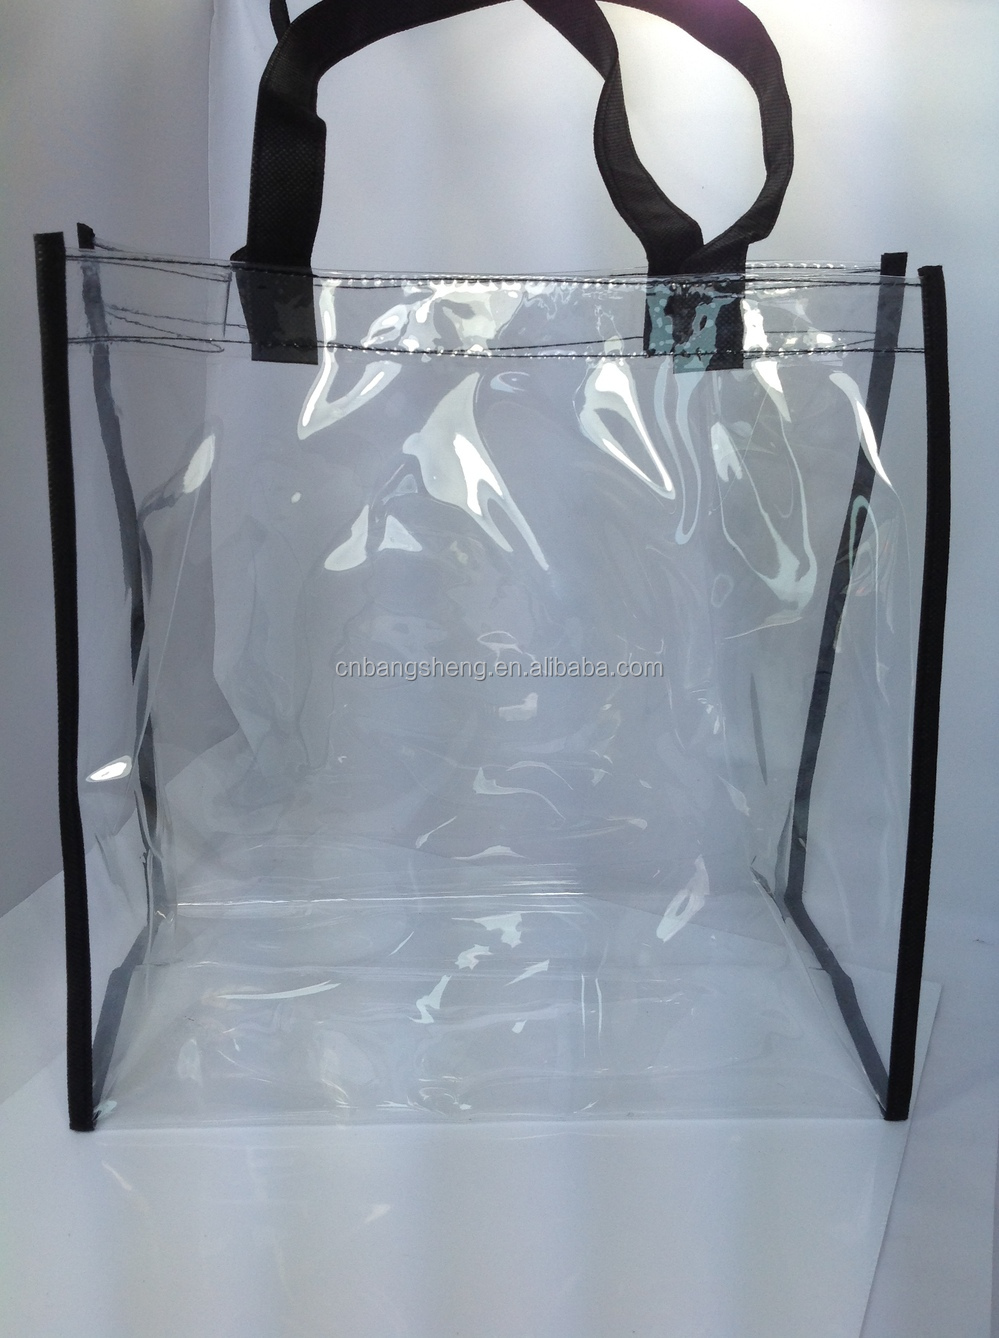 Transparent Clear Plastic Carry Bags,Pvc Shopping Bag - Buy Clear ...